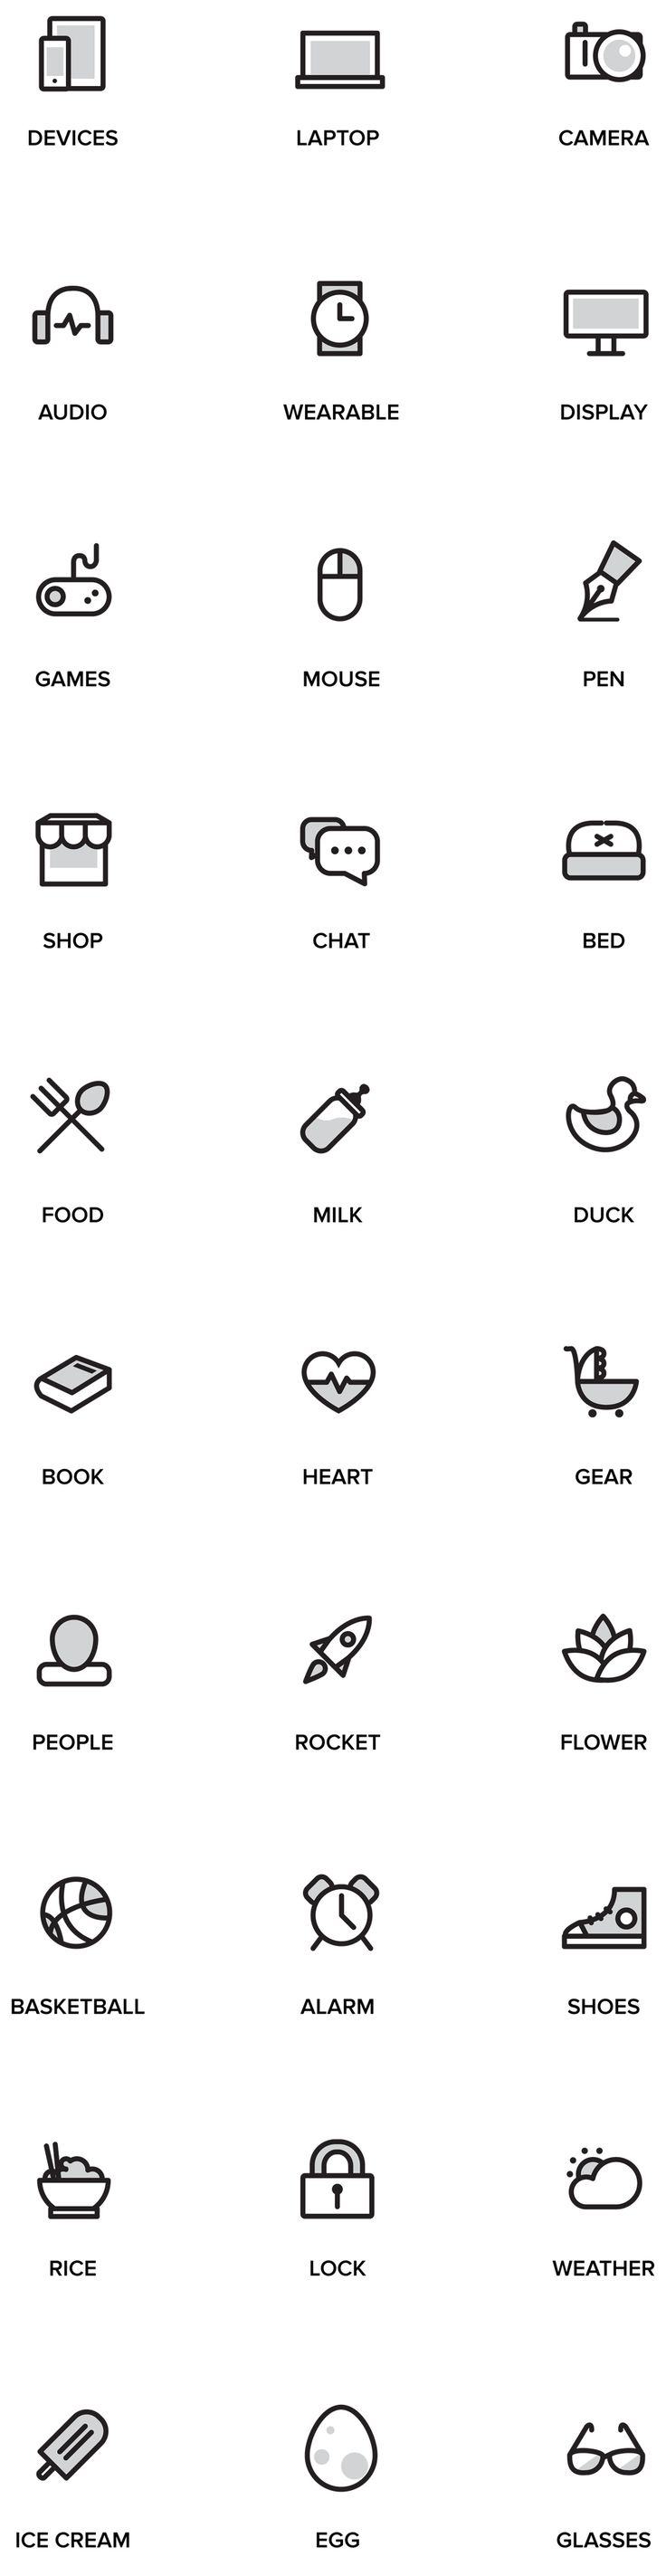 Random Stuff Free Iconset, #AI, #Free, #Graphic #Design, #Icon, #Outline, #Resource, #Vector